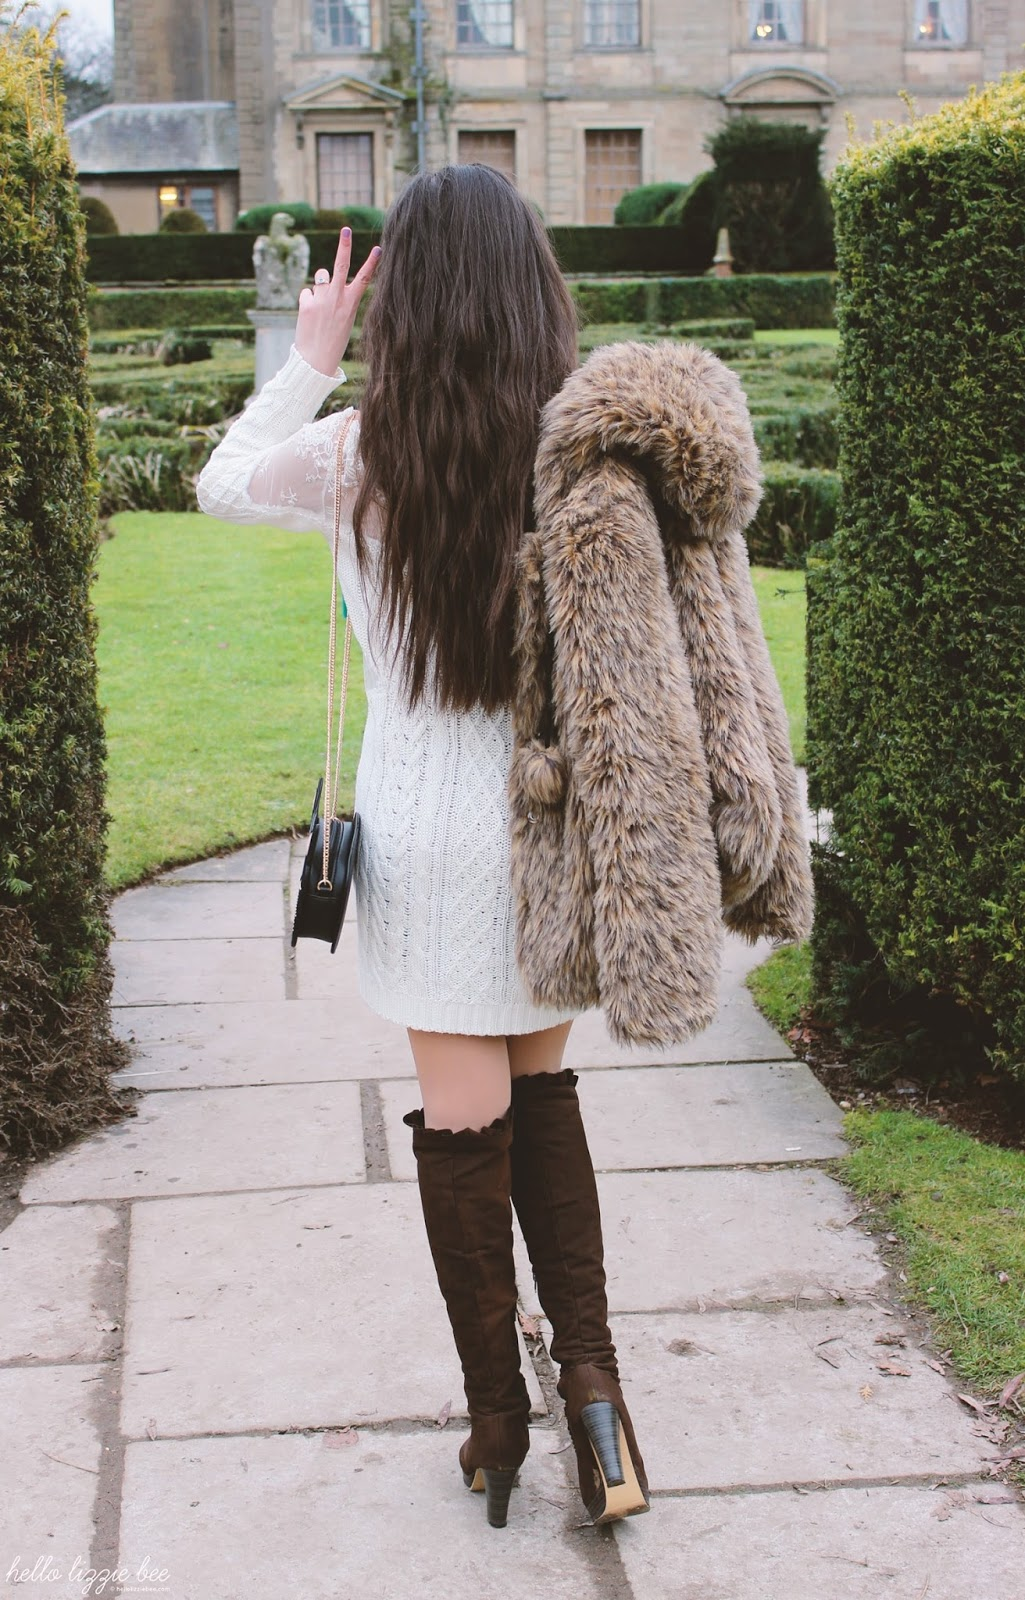 full outfit shot, white sweater dress and leopard print coat